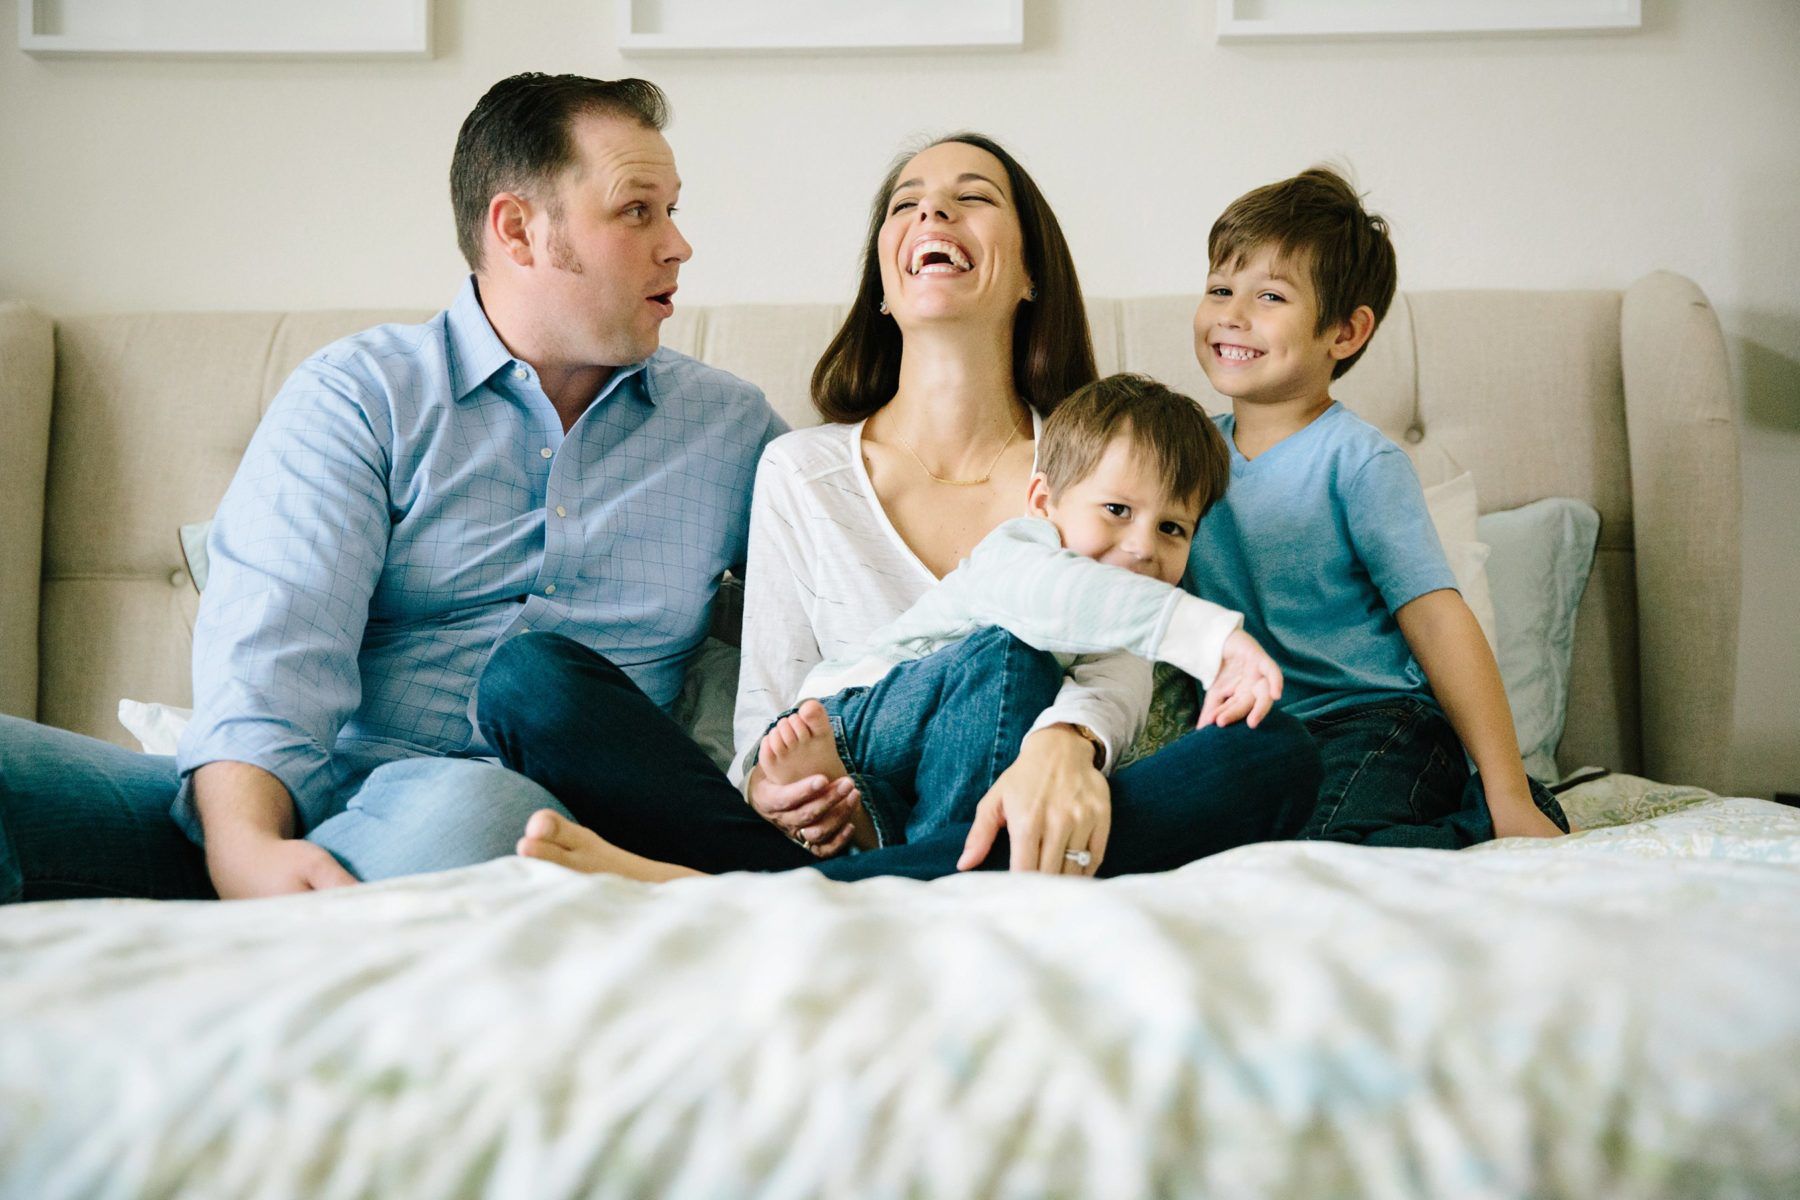 mom, dad and little brothers laughing on bed